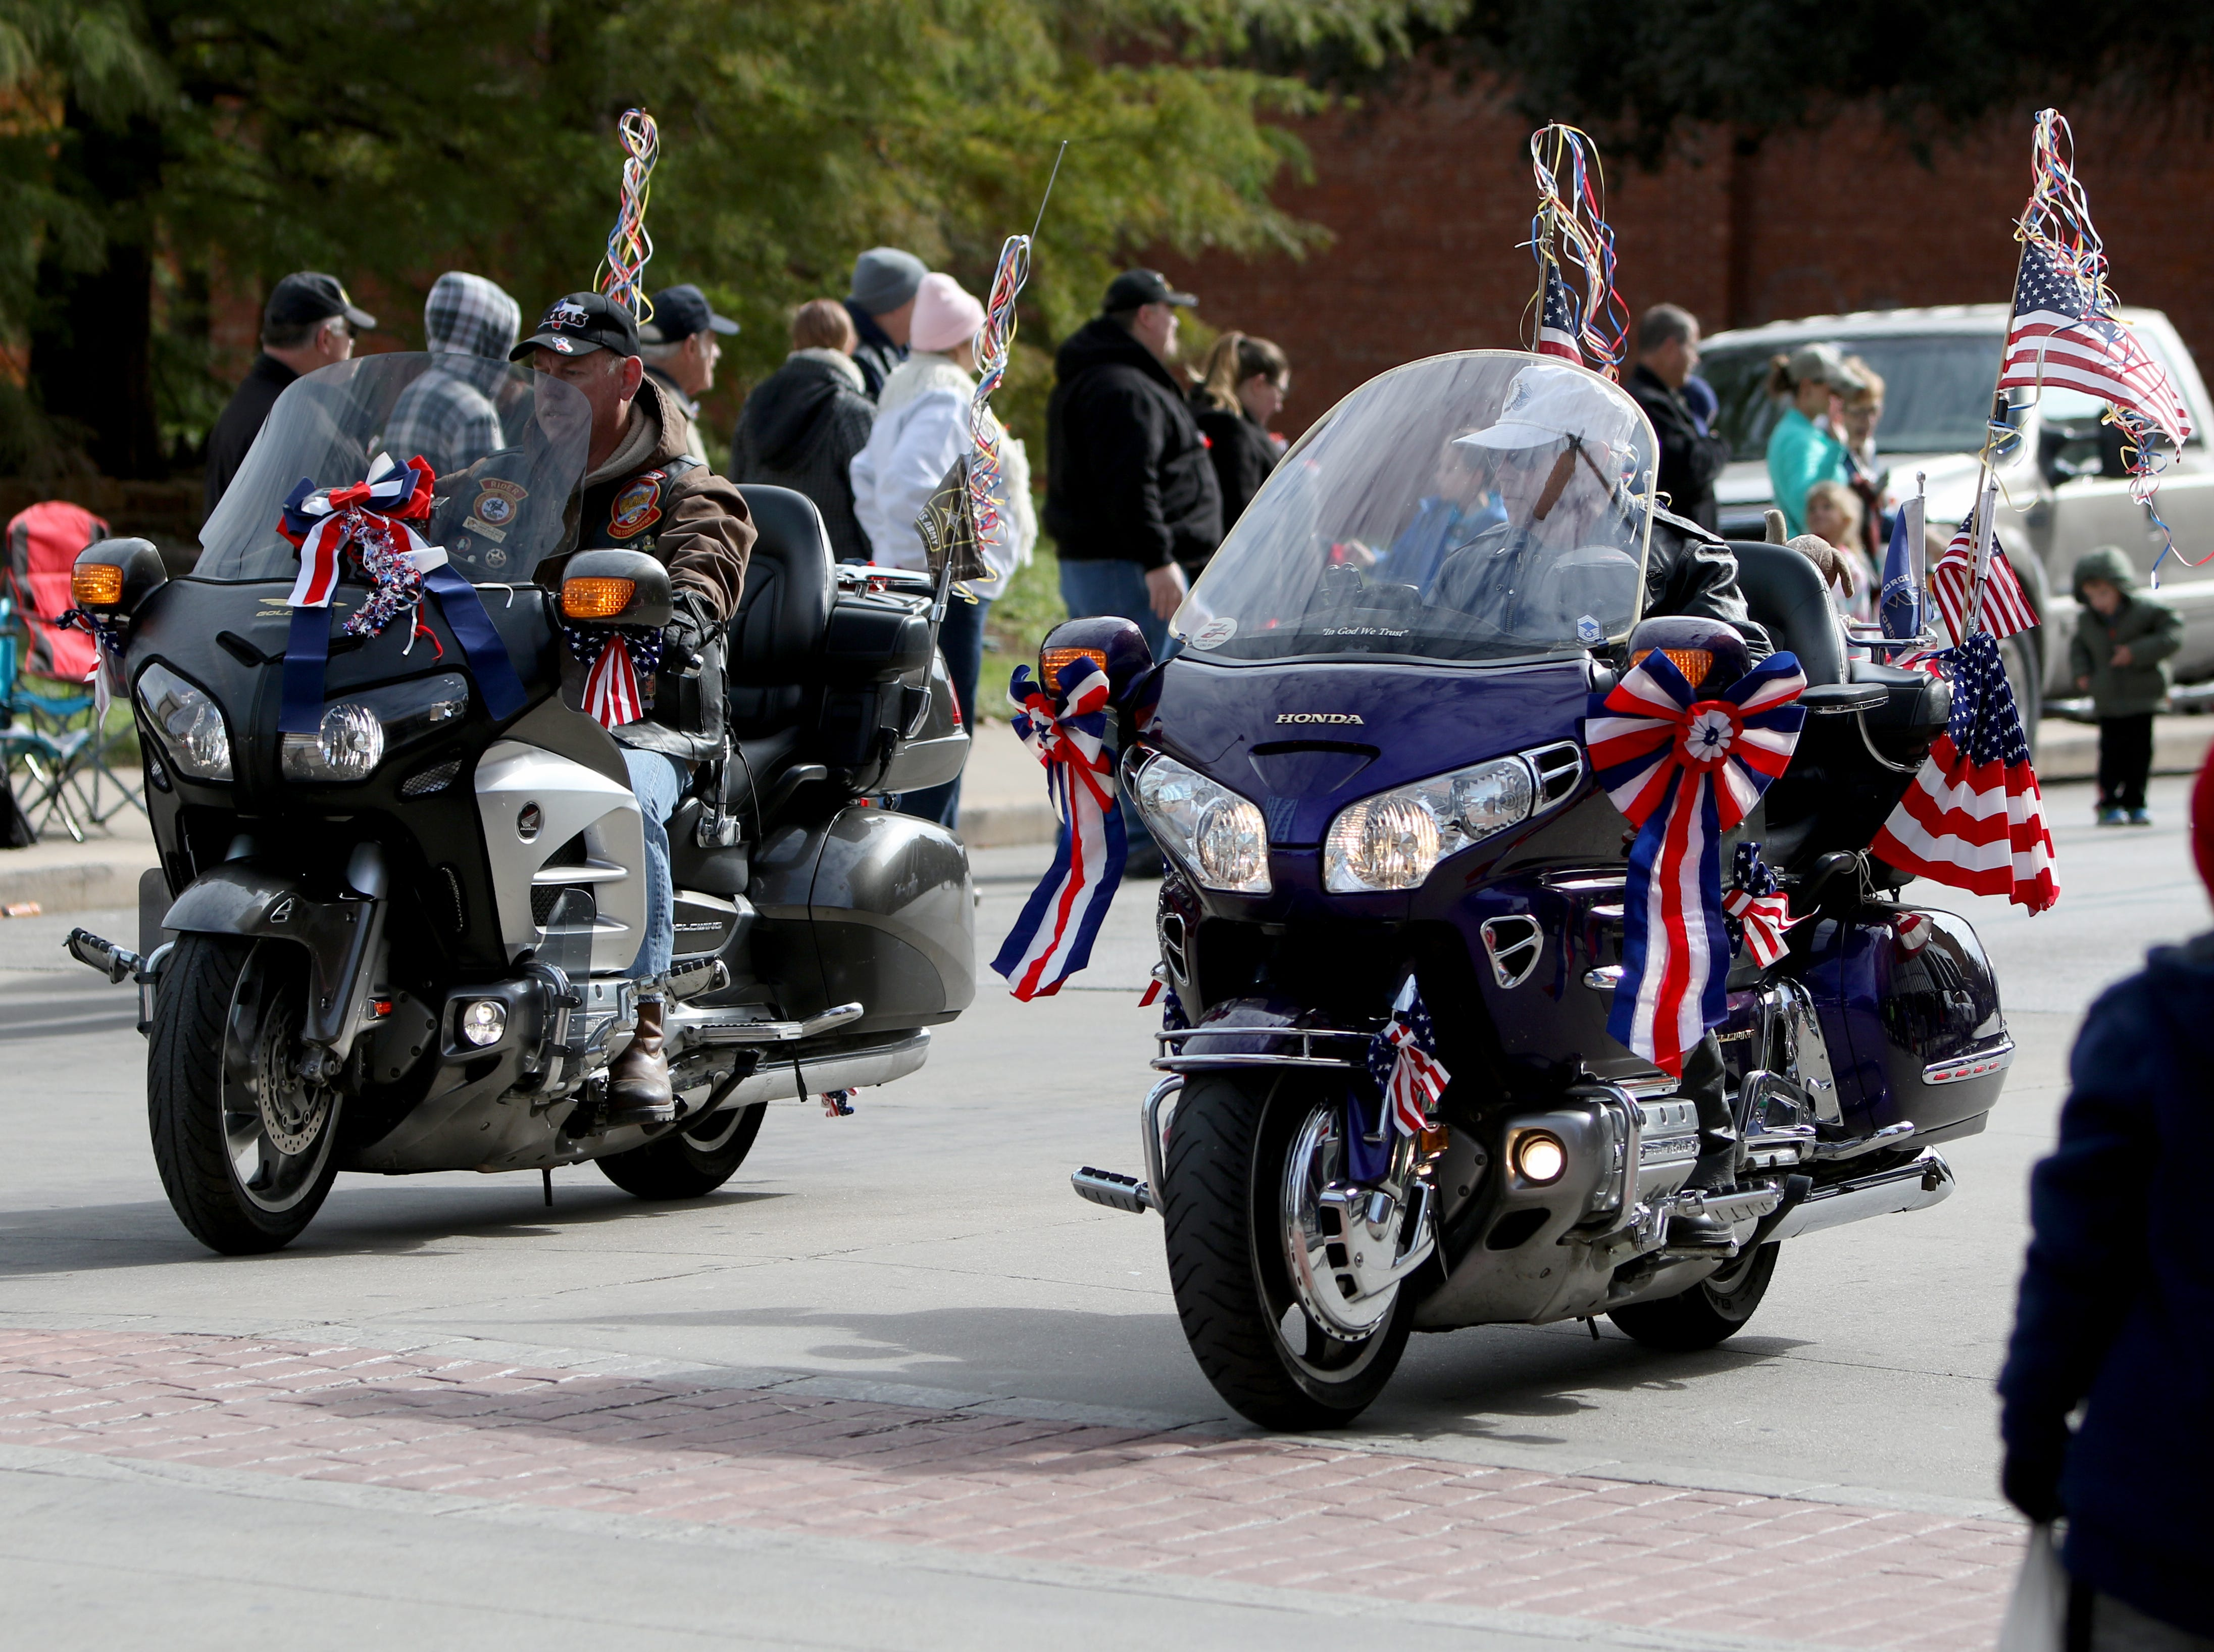 The military, JROTCs, schools and other organizations take part in the Veterans Day parade Saturday, Nov. 10, 2018, in downtown Wichita Falls on the 100th anniversary of the Armistice of Compiègne that ended fighting in World War I.